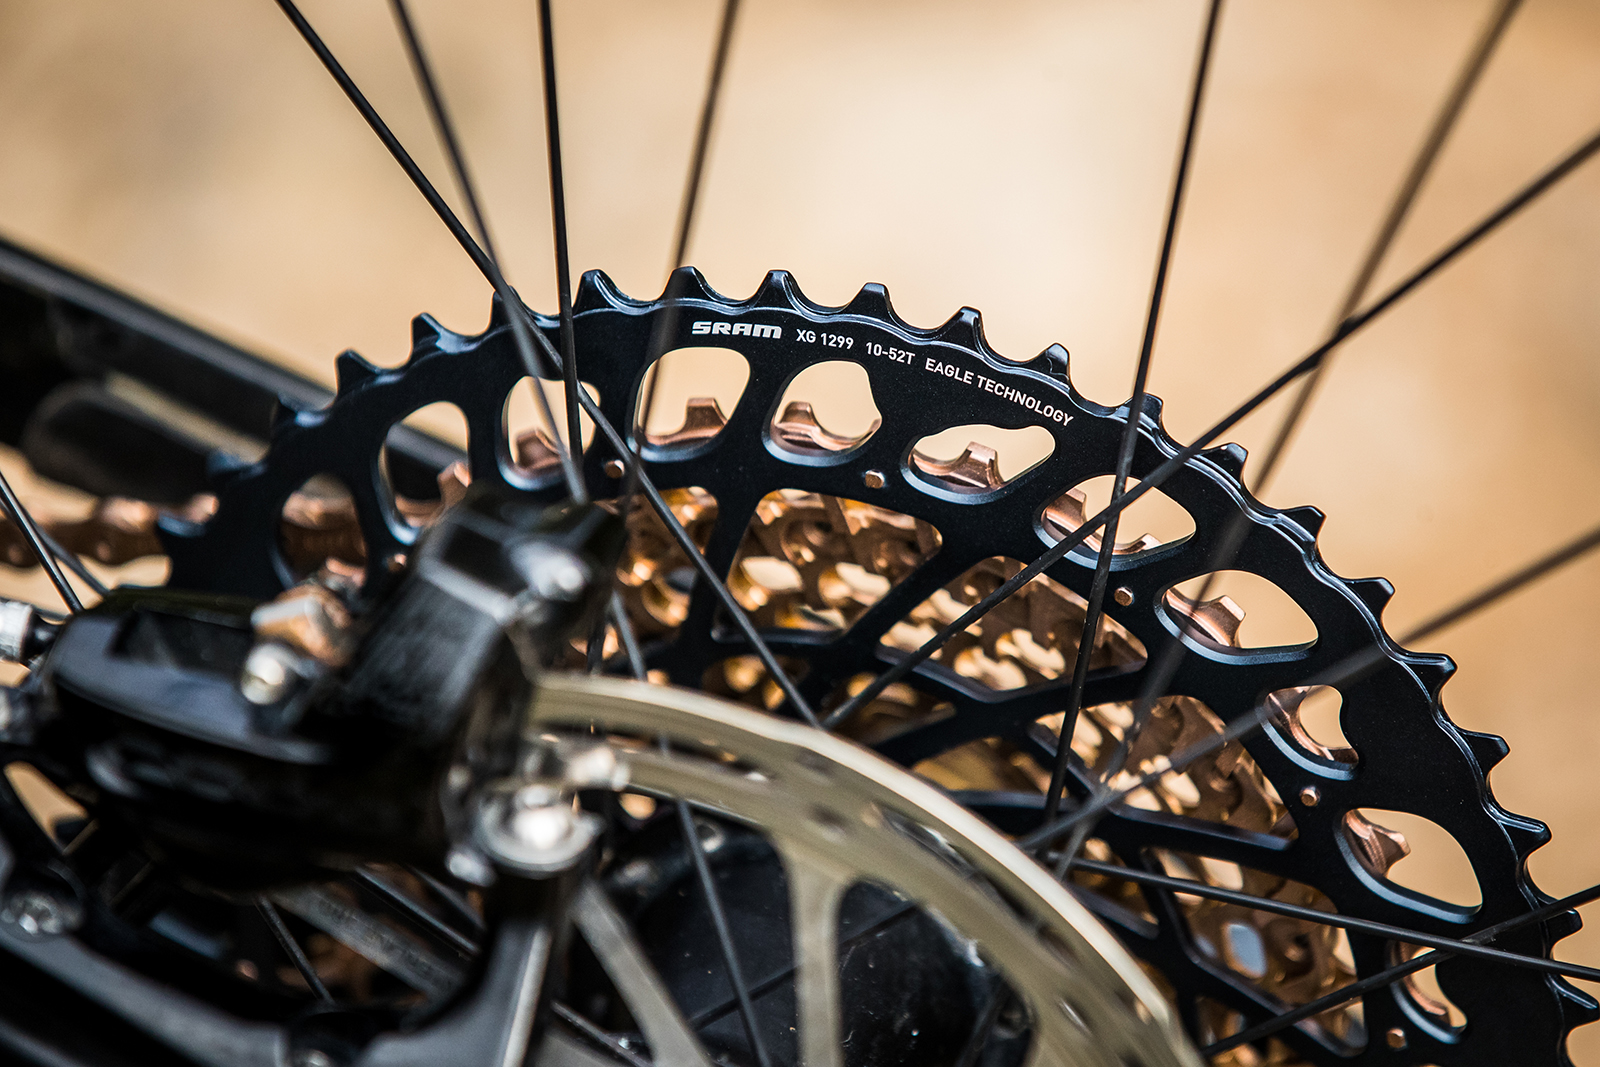 The new expanded-range 10-52t cassettes will work best with SRAM's new Eagle rear derailleurs.